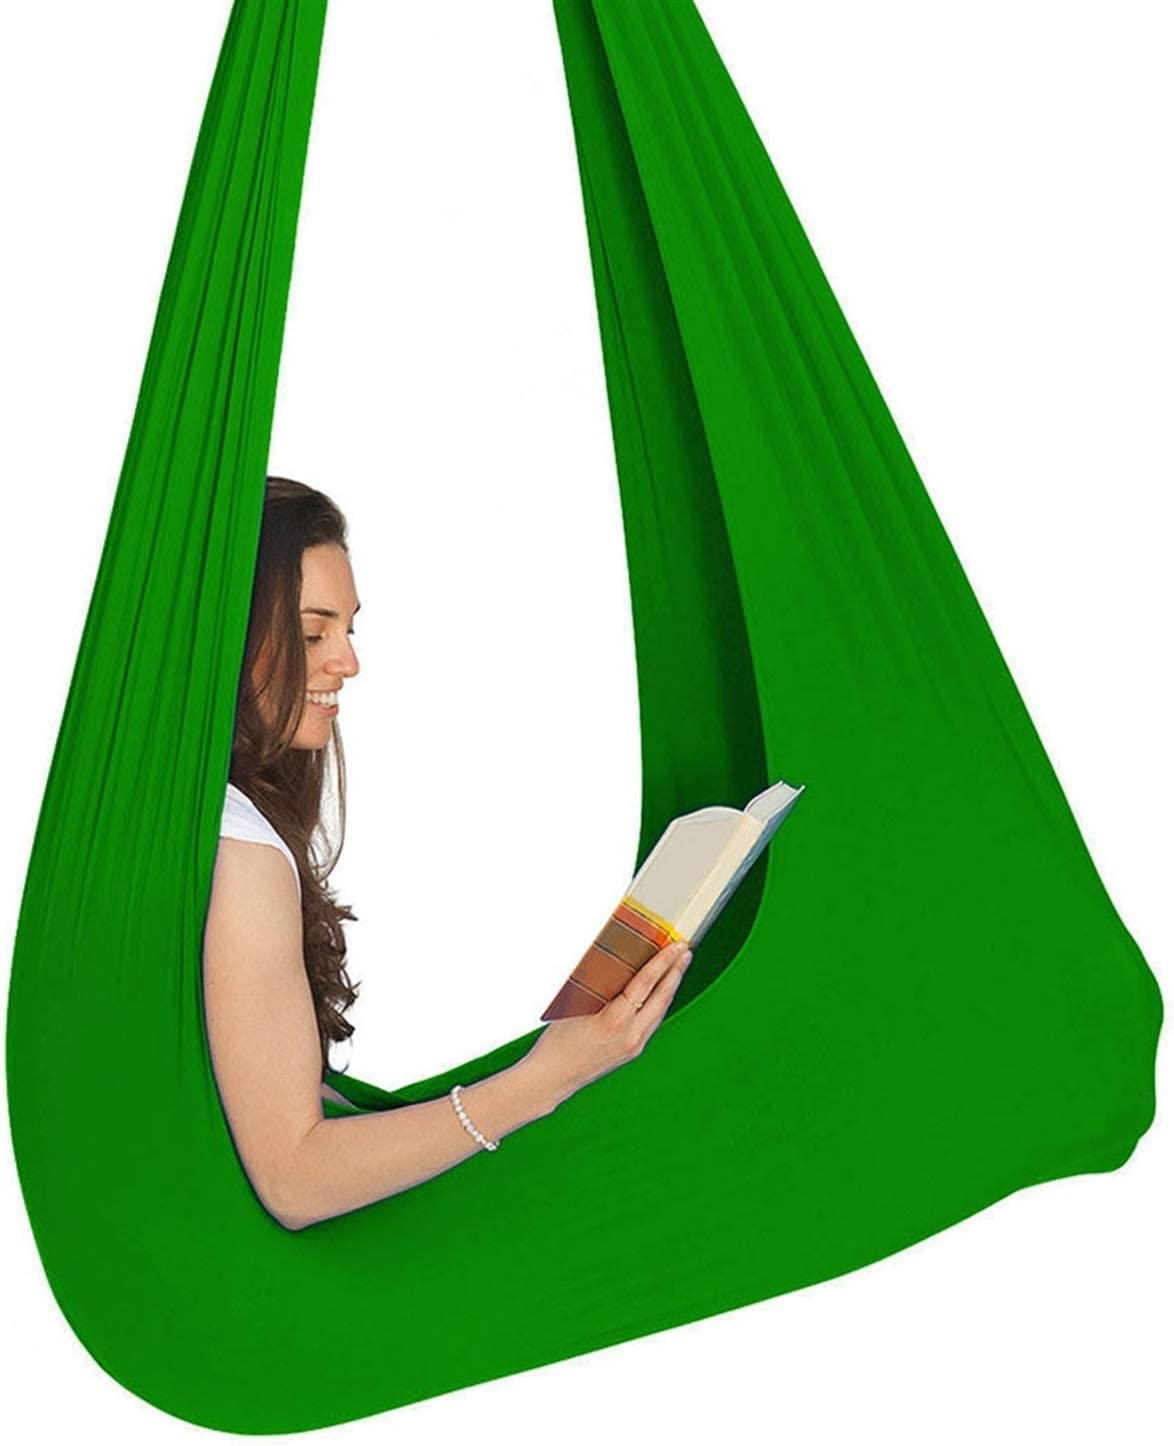 67% OFF of fixed Max 60% OFF price ZCXBHD Sensory Swing Indoor Hammock Chair Gr Needs